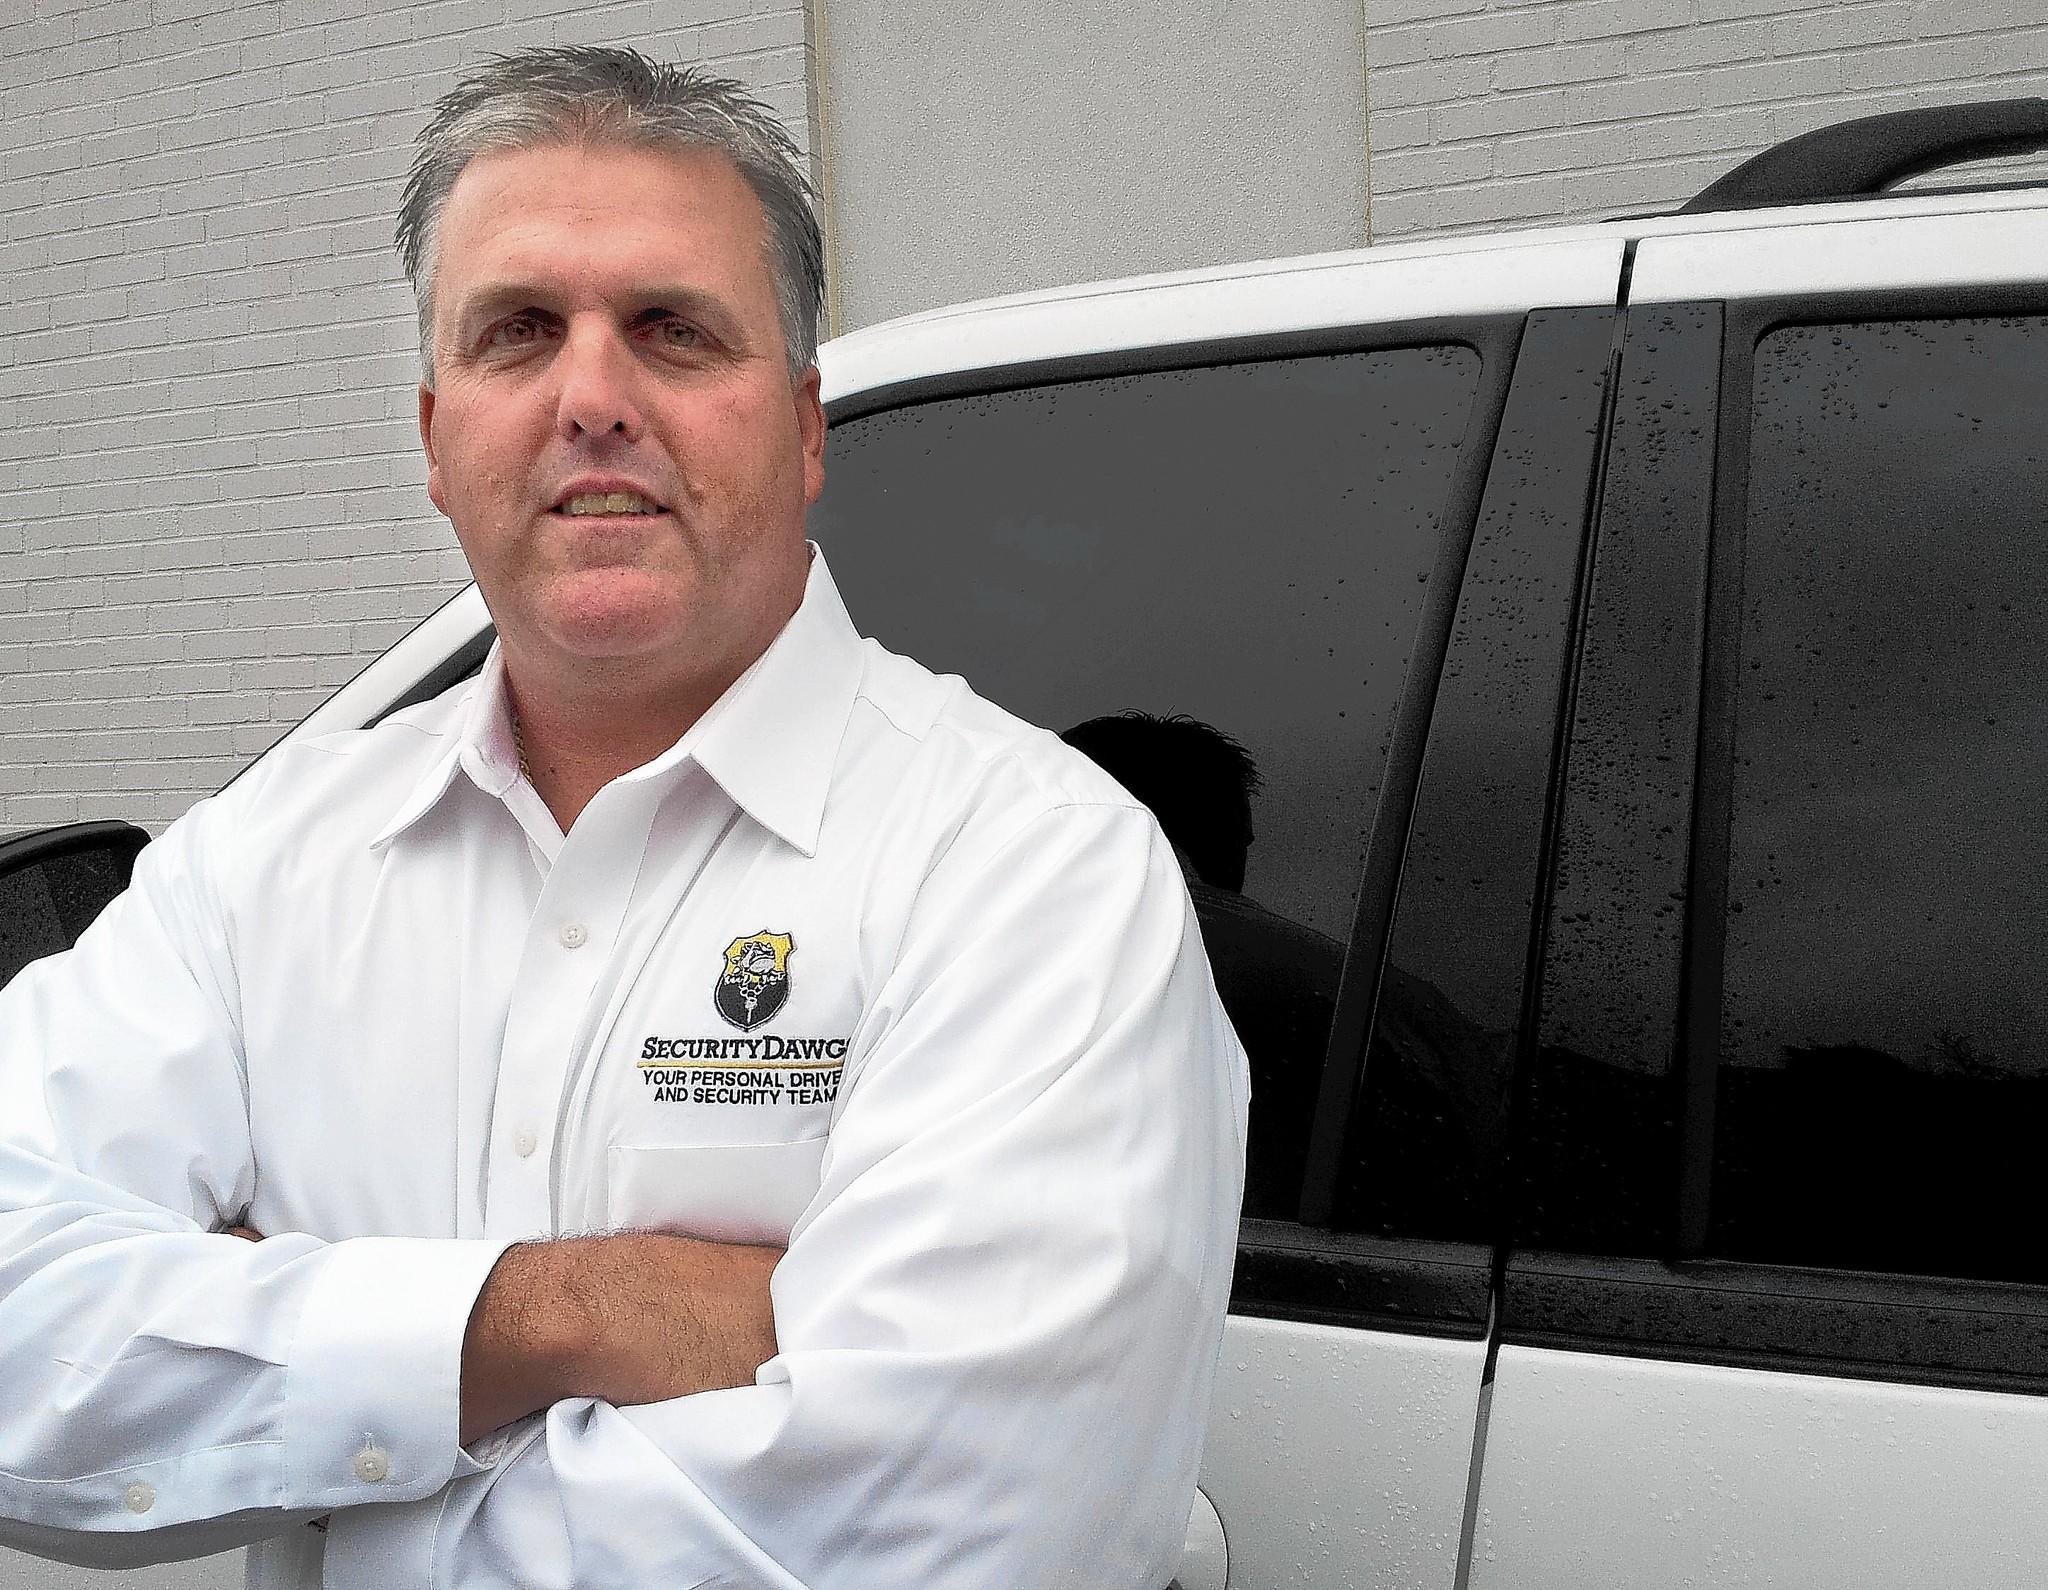 Colt Bracken, a Baltimore County Police detective, started working as a personal driver for a local business executive about 8 years ago, to supplement his income. Today, his company Security Dawgs employs more than a dozen off-duty and retired law enforcement officers as part-time drivers.